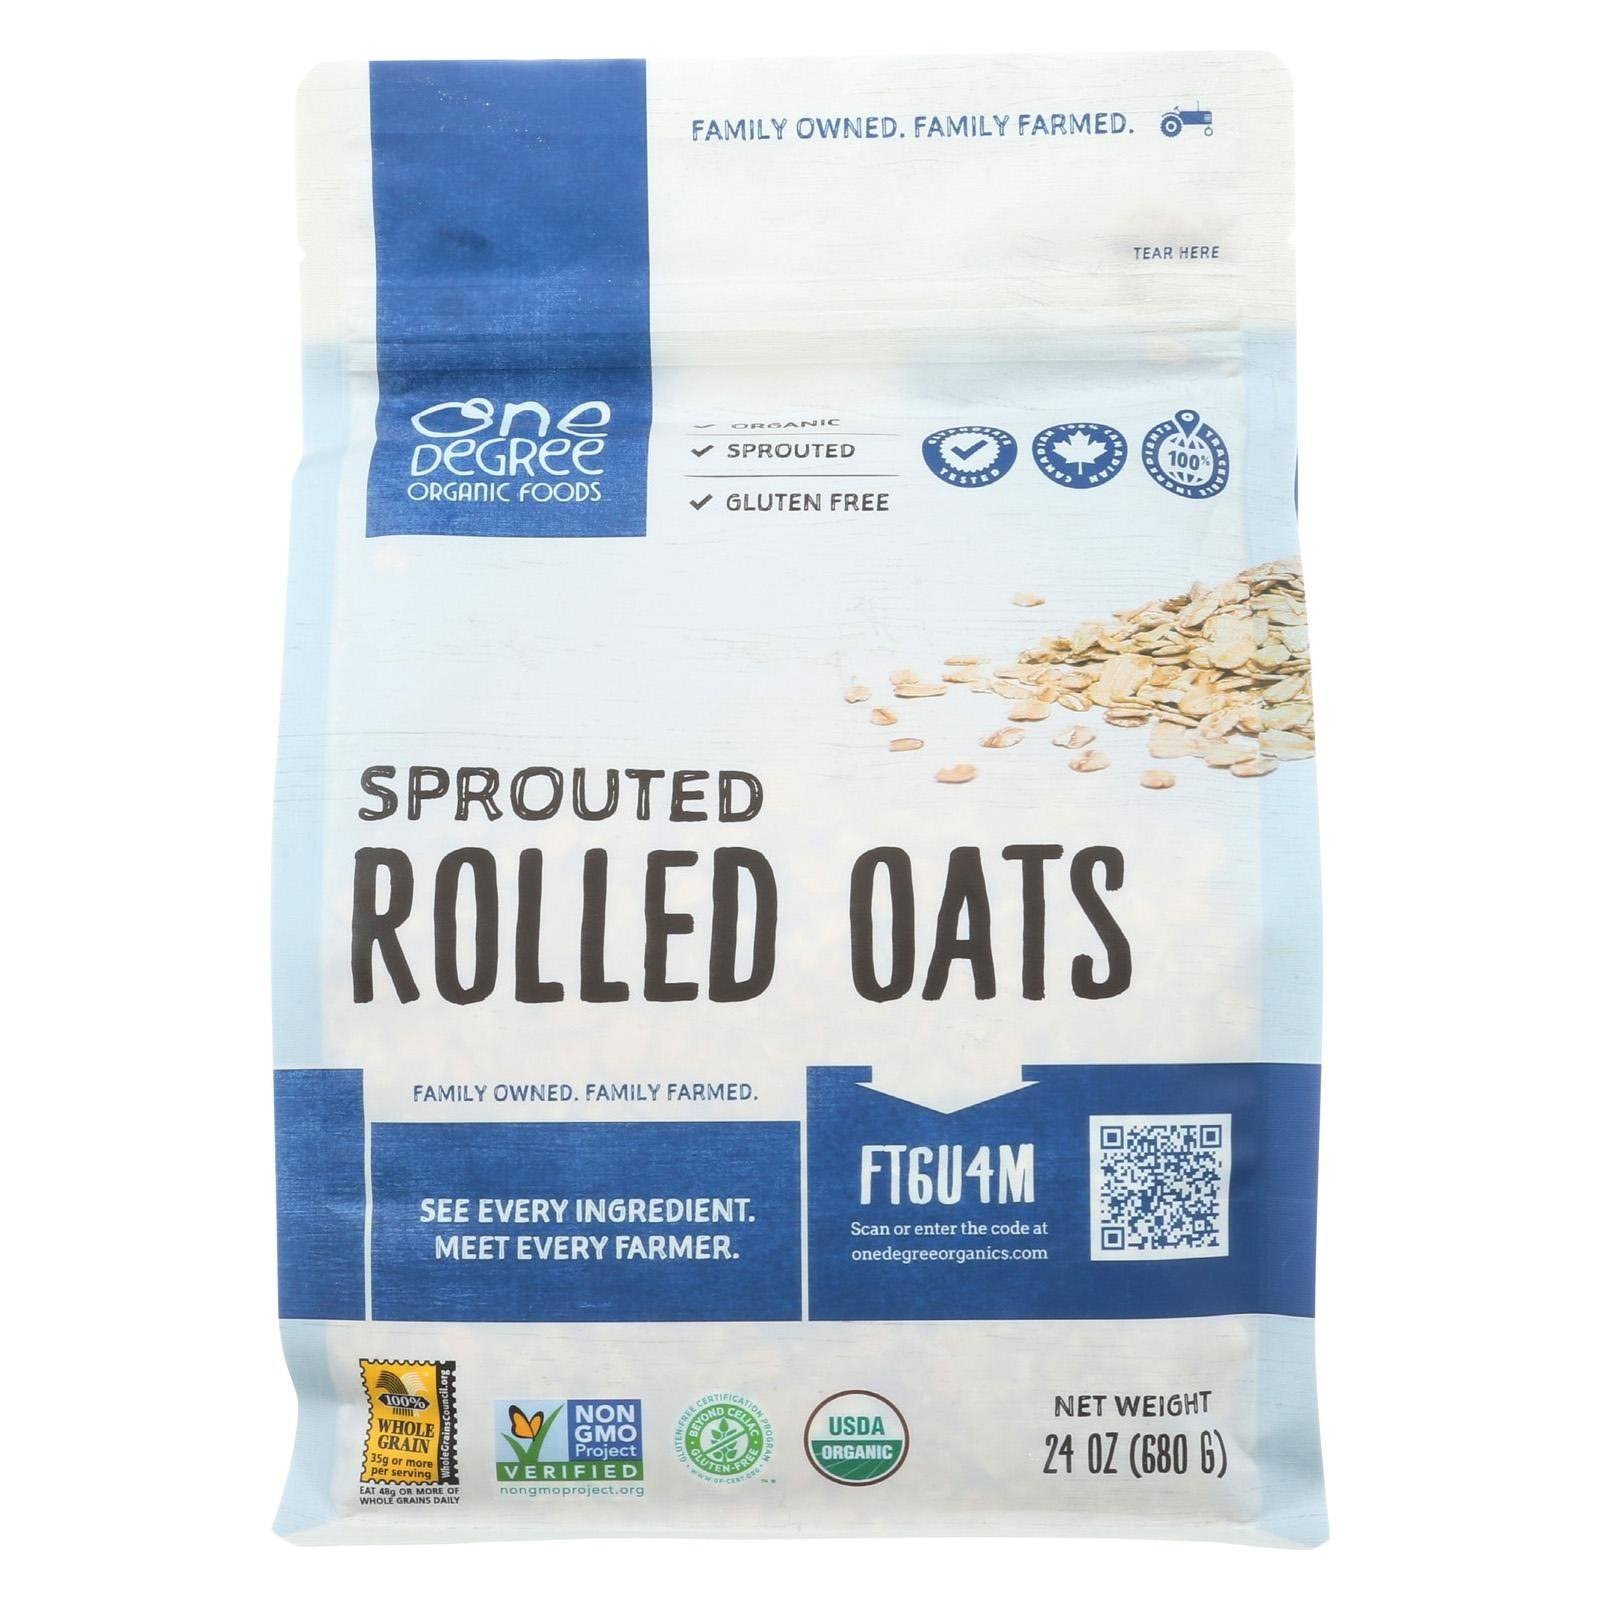 One Degree Organic Foods Organic Sprouted Rolled Oats, 24 Ounce